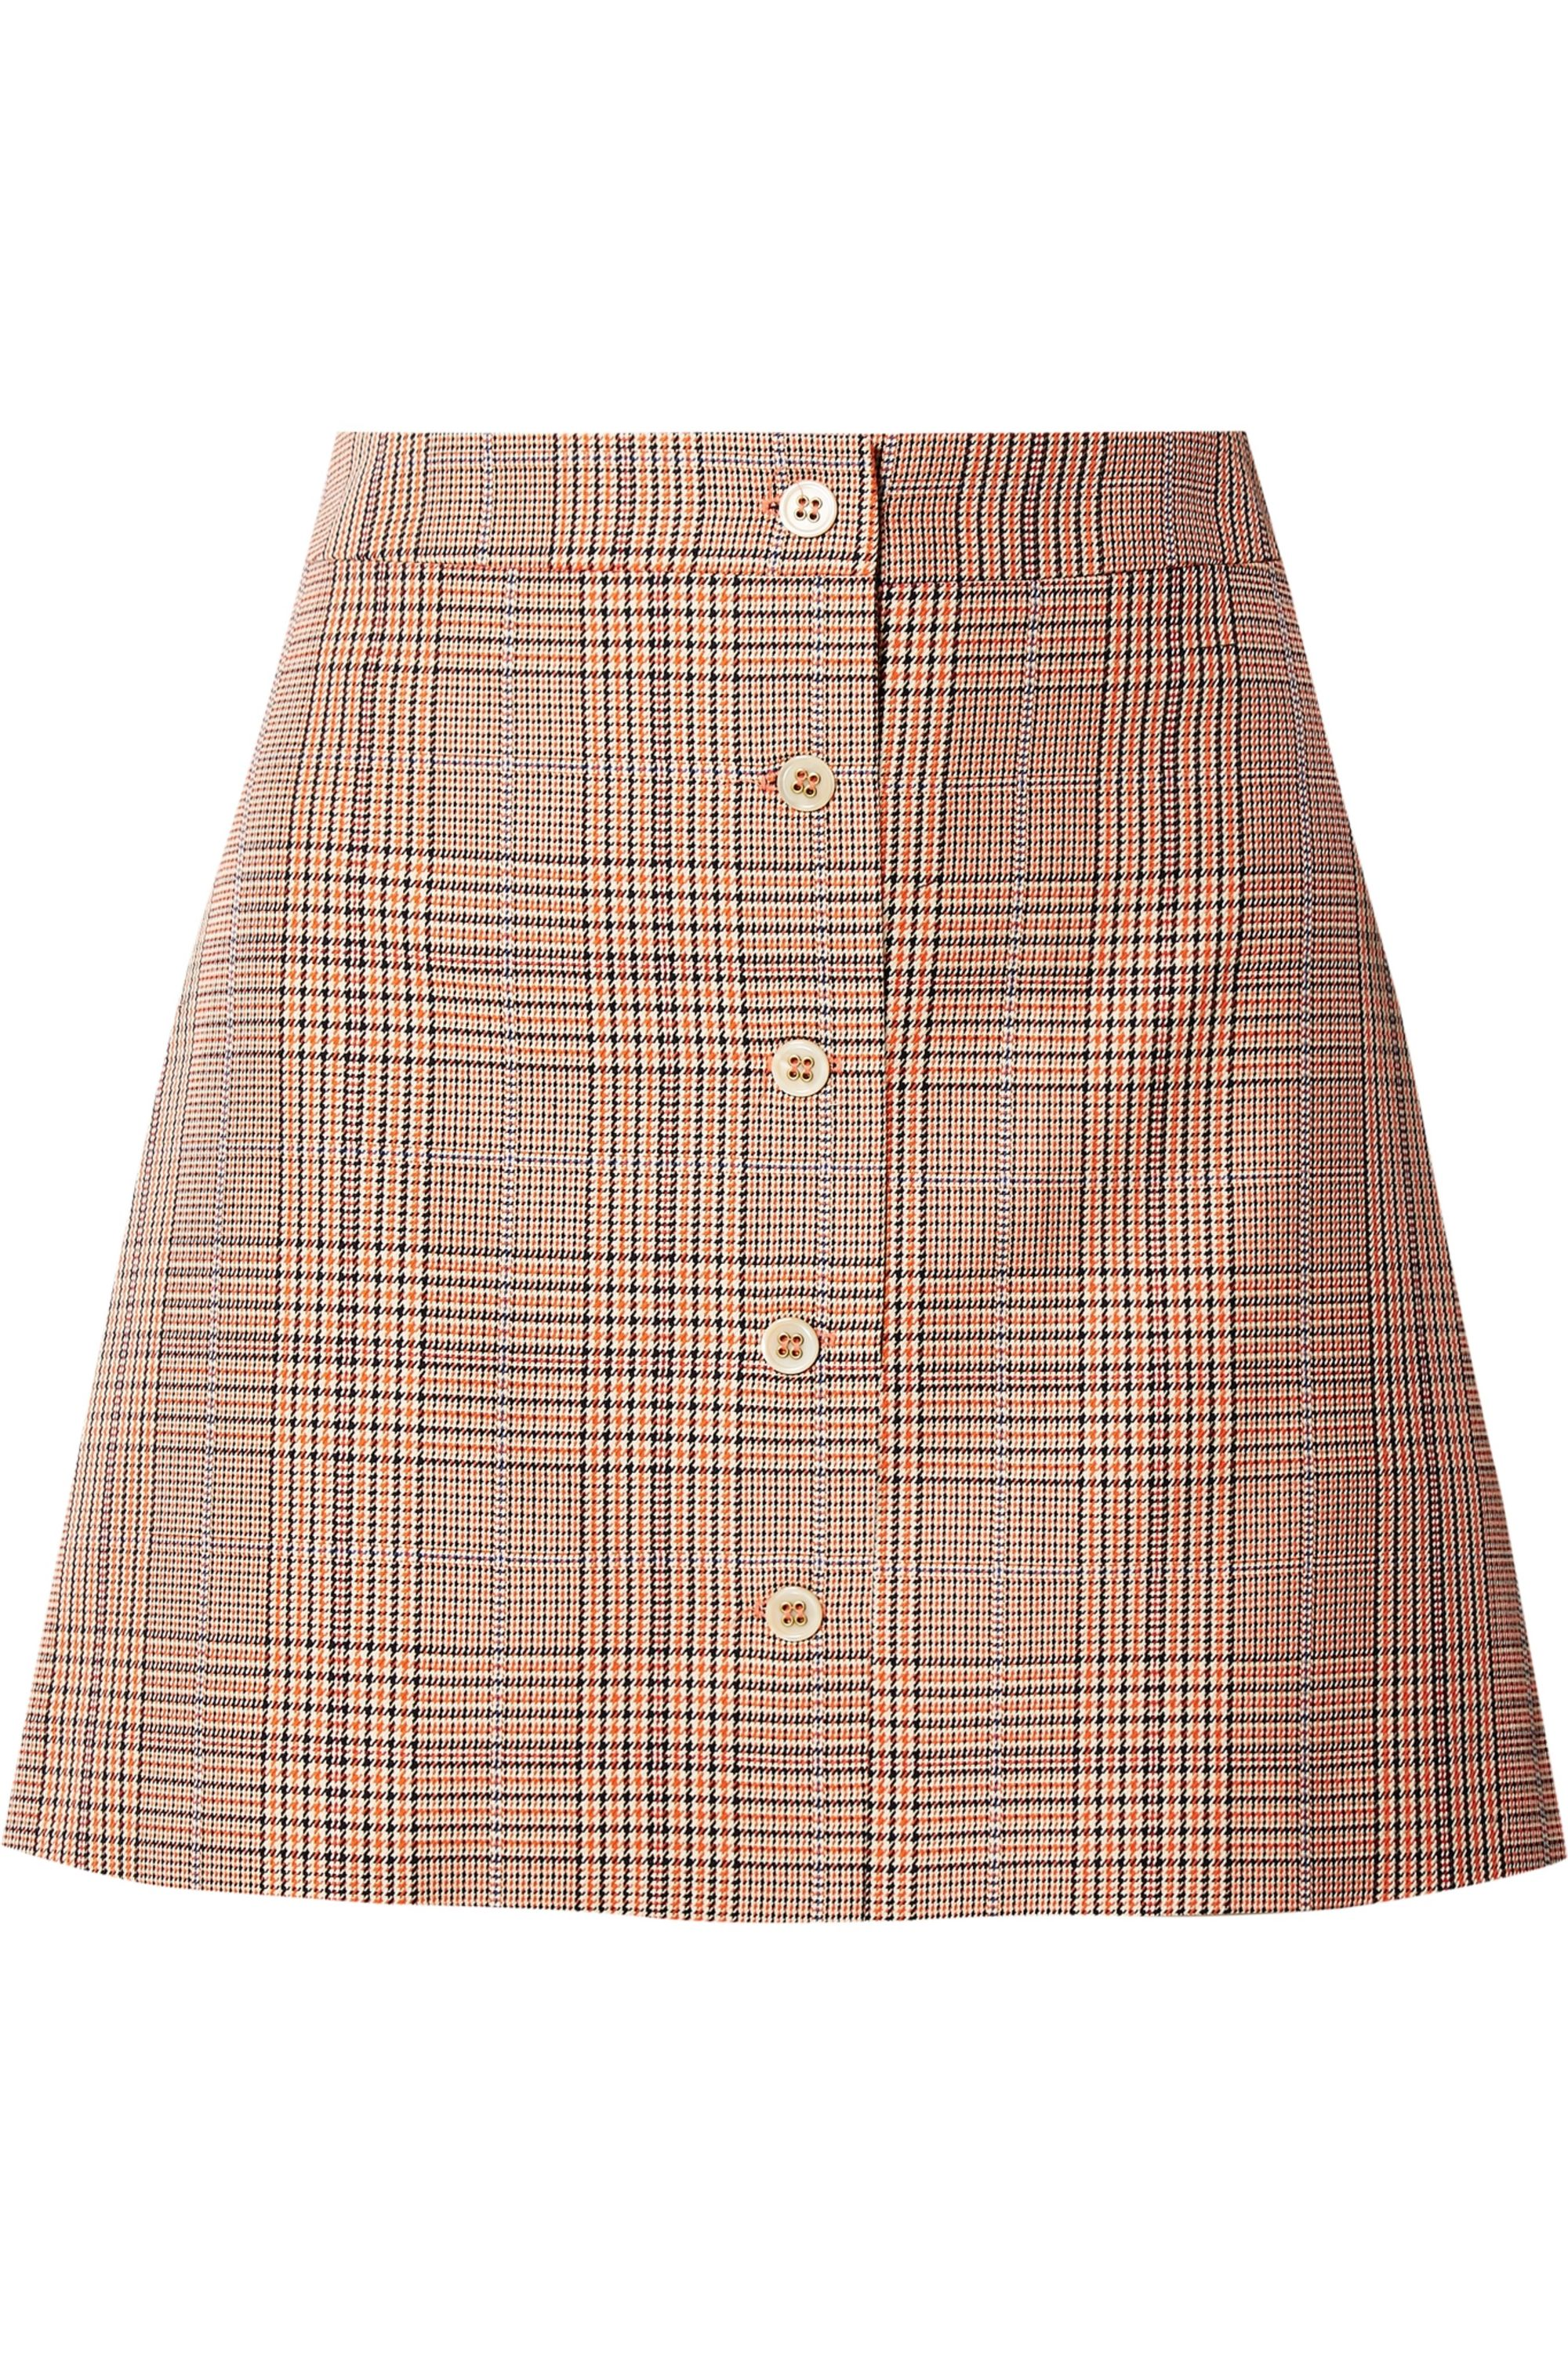 Paul & Joe Allumet houndstooth cotton mini skirt